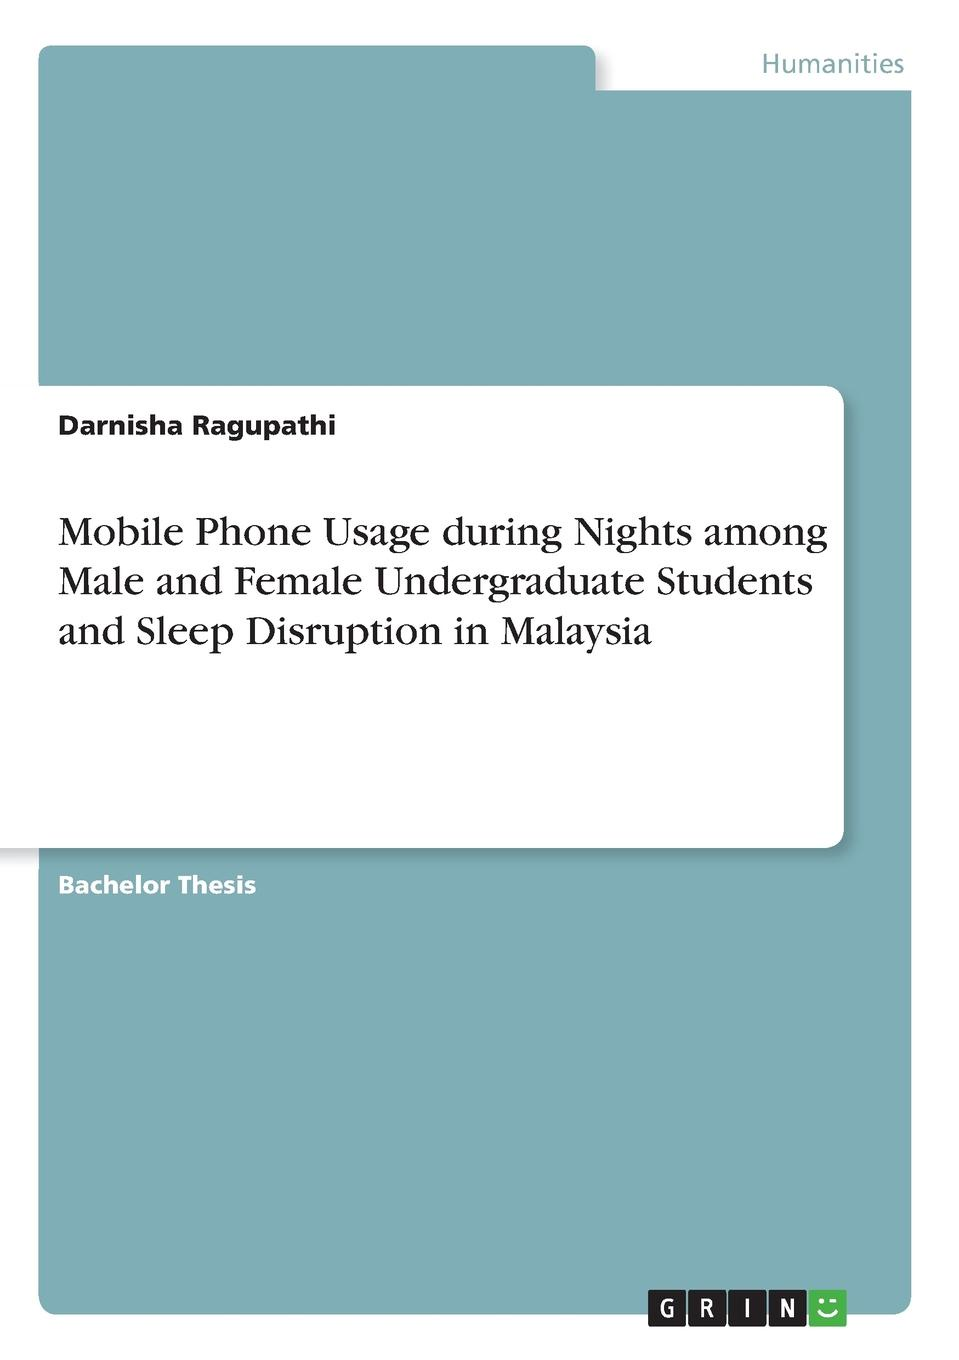 Darnisha Ragupathi Mobile Phone Usage during Nights among Male and Female Undergraduate Students and Sleep Disruption in Malaysia ishfaq ahmed and tehmina fiaz qazi mobile phone adoption a habit or necessity